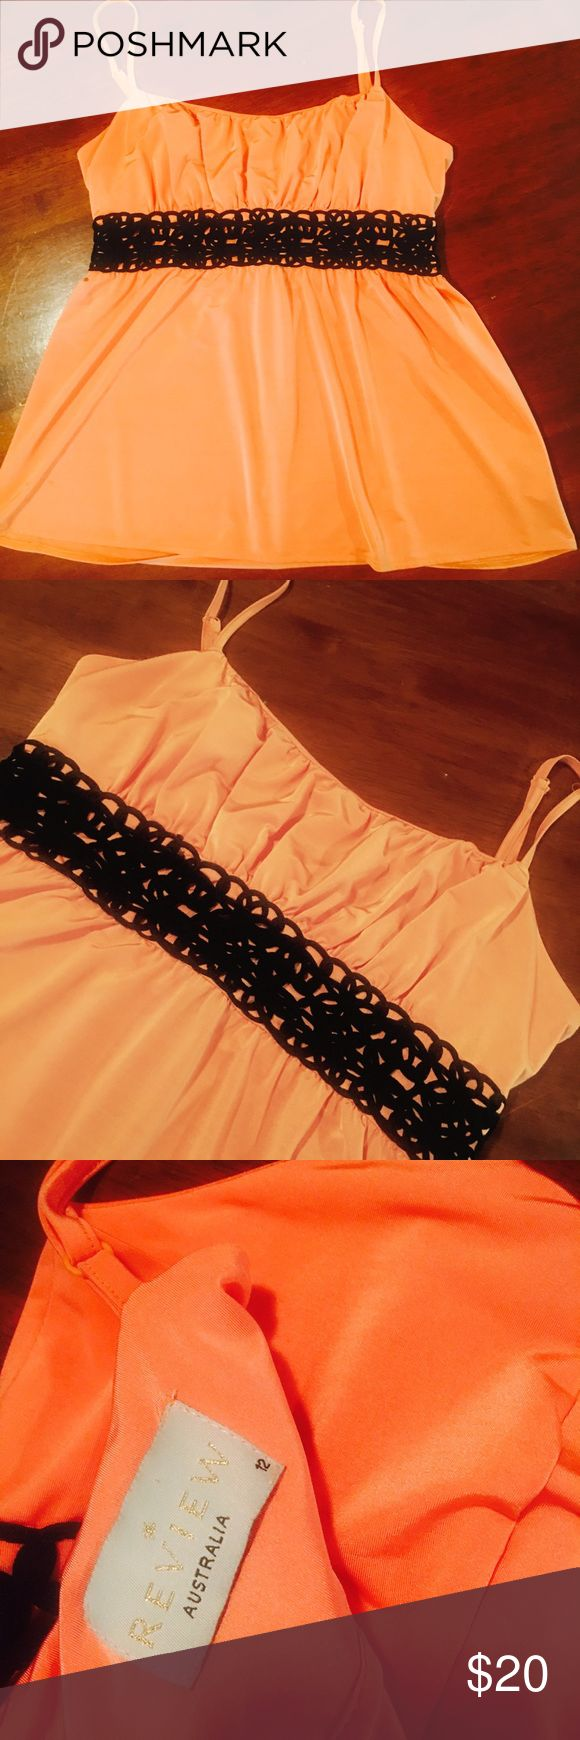 Orange / Peach semi formal top Gorgeous Semi formal strappy top with black lace detail. Worn once only for a wedding. Review Australia Tops Camisoles